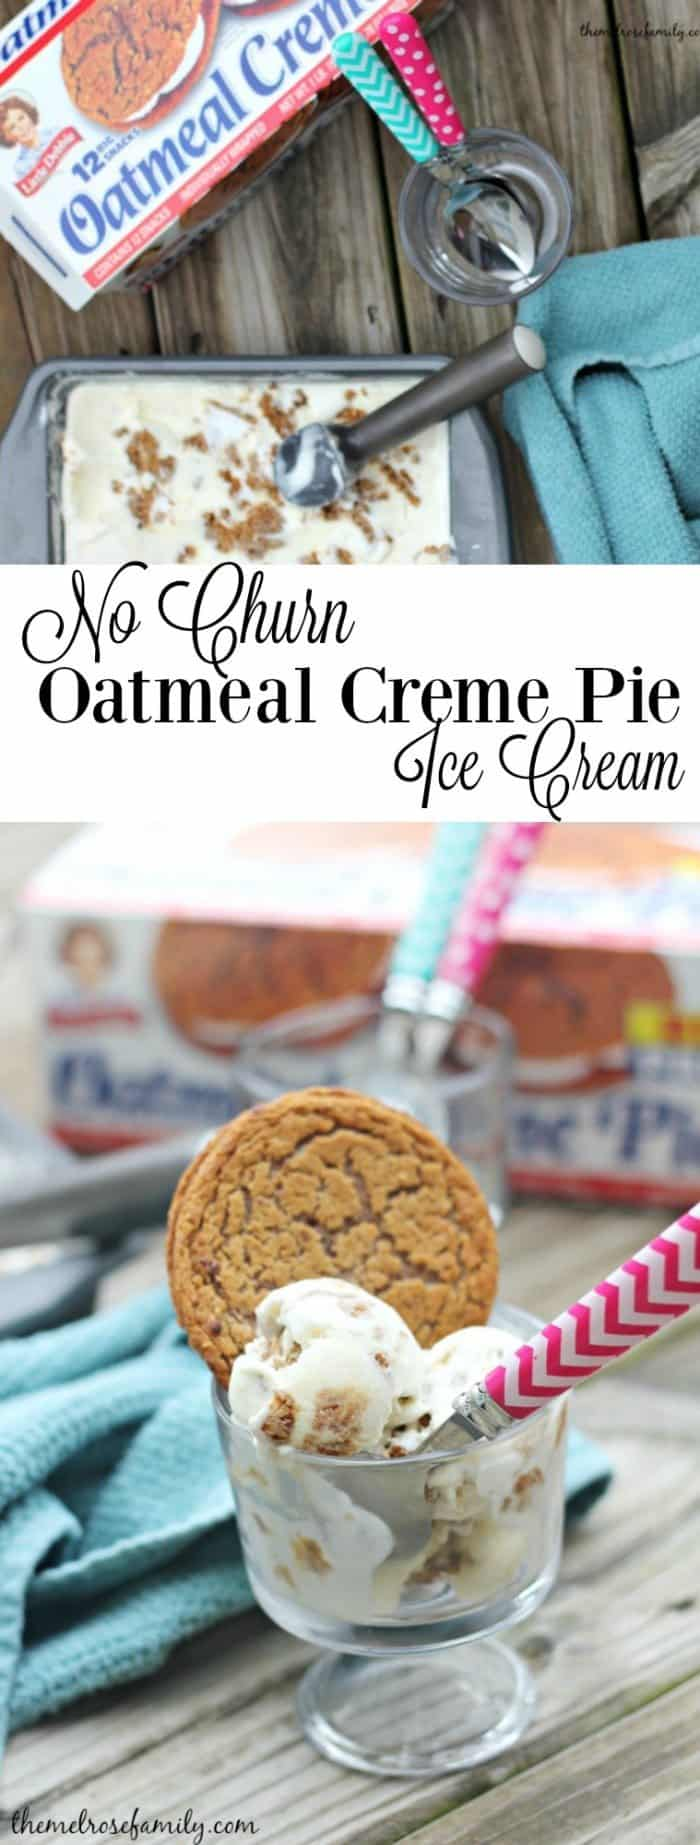 Are you looking for the perfect ice cream? Don't look any further because this no churn oatmeal creme pie ice cream is going to knock your socks off.